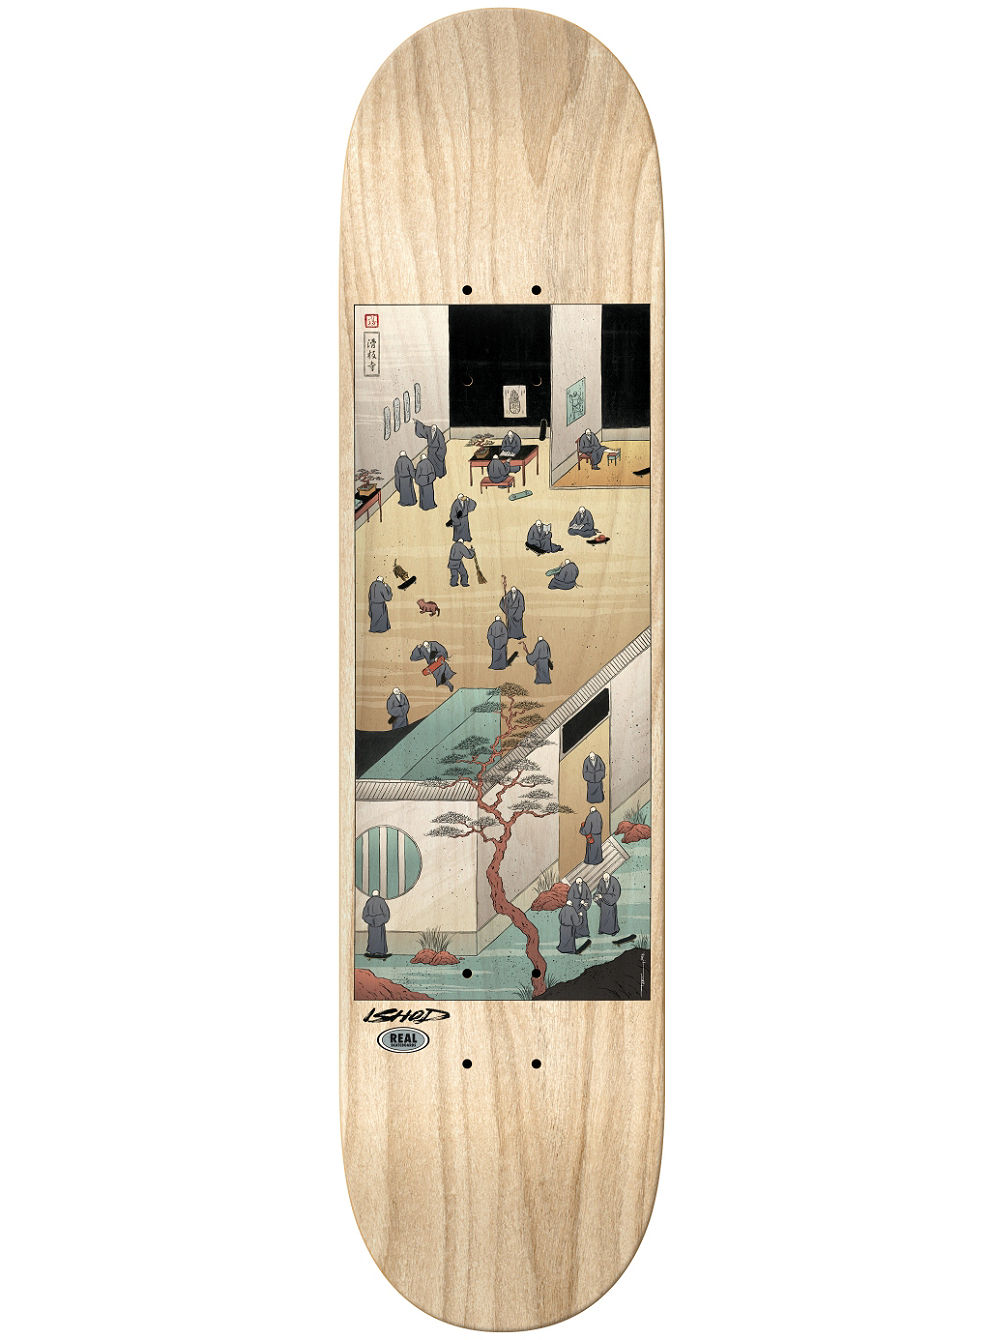 real-ishod-wair-temple-of-skate-812-x-32-deck